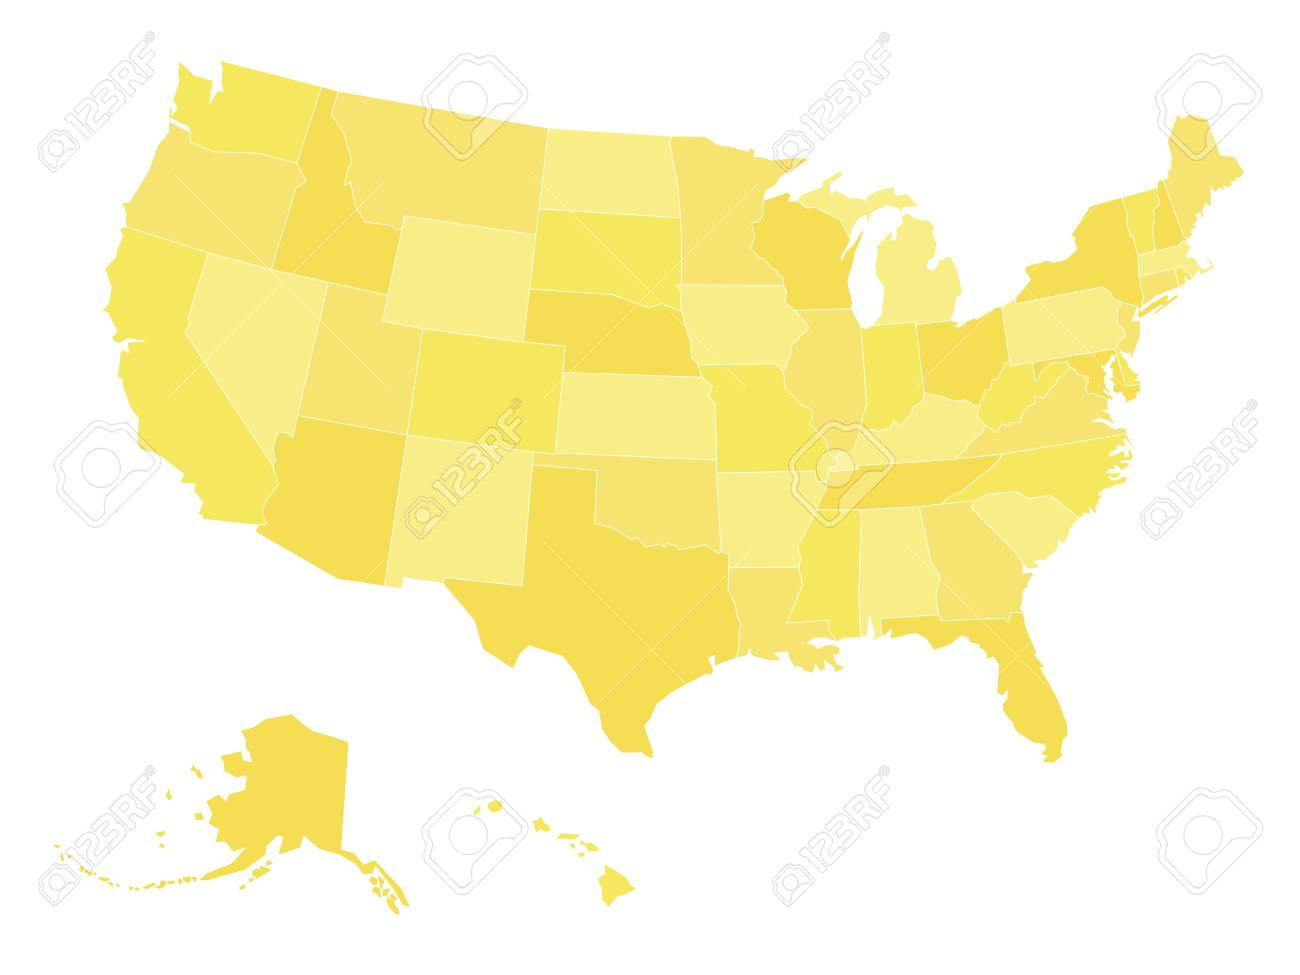 Blank Map Of United States Of America Aka Usa Divided Into